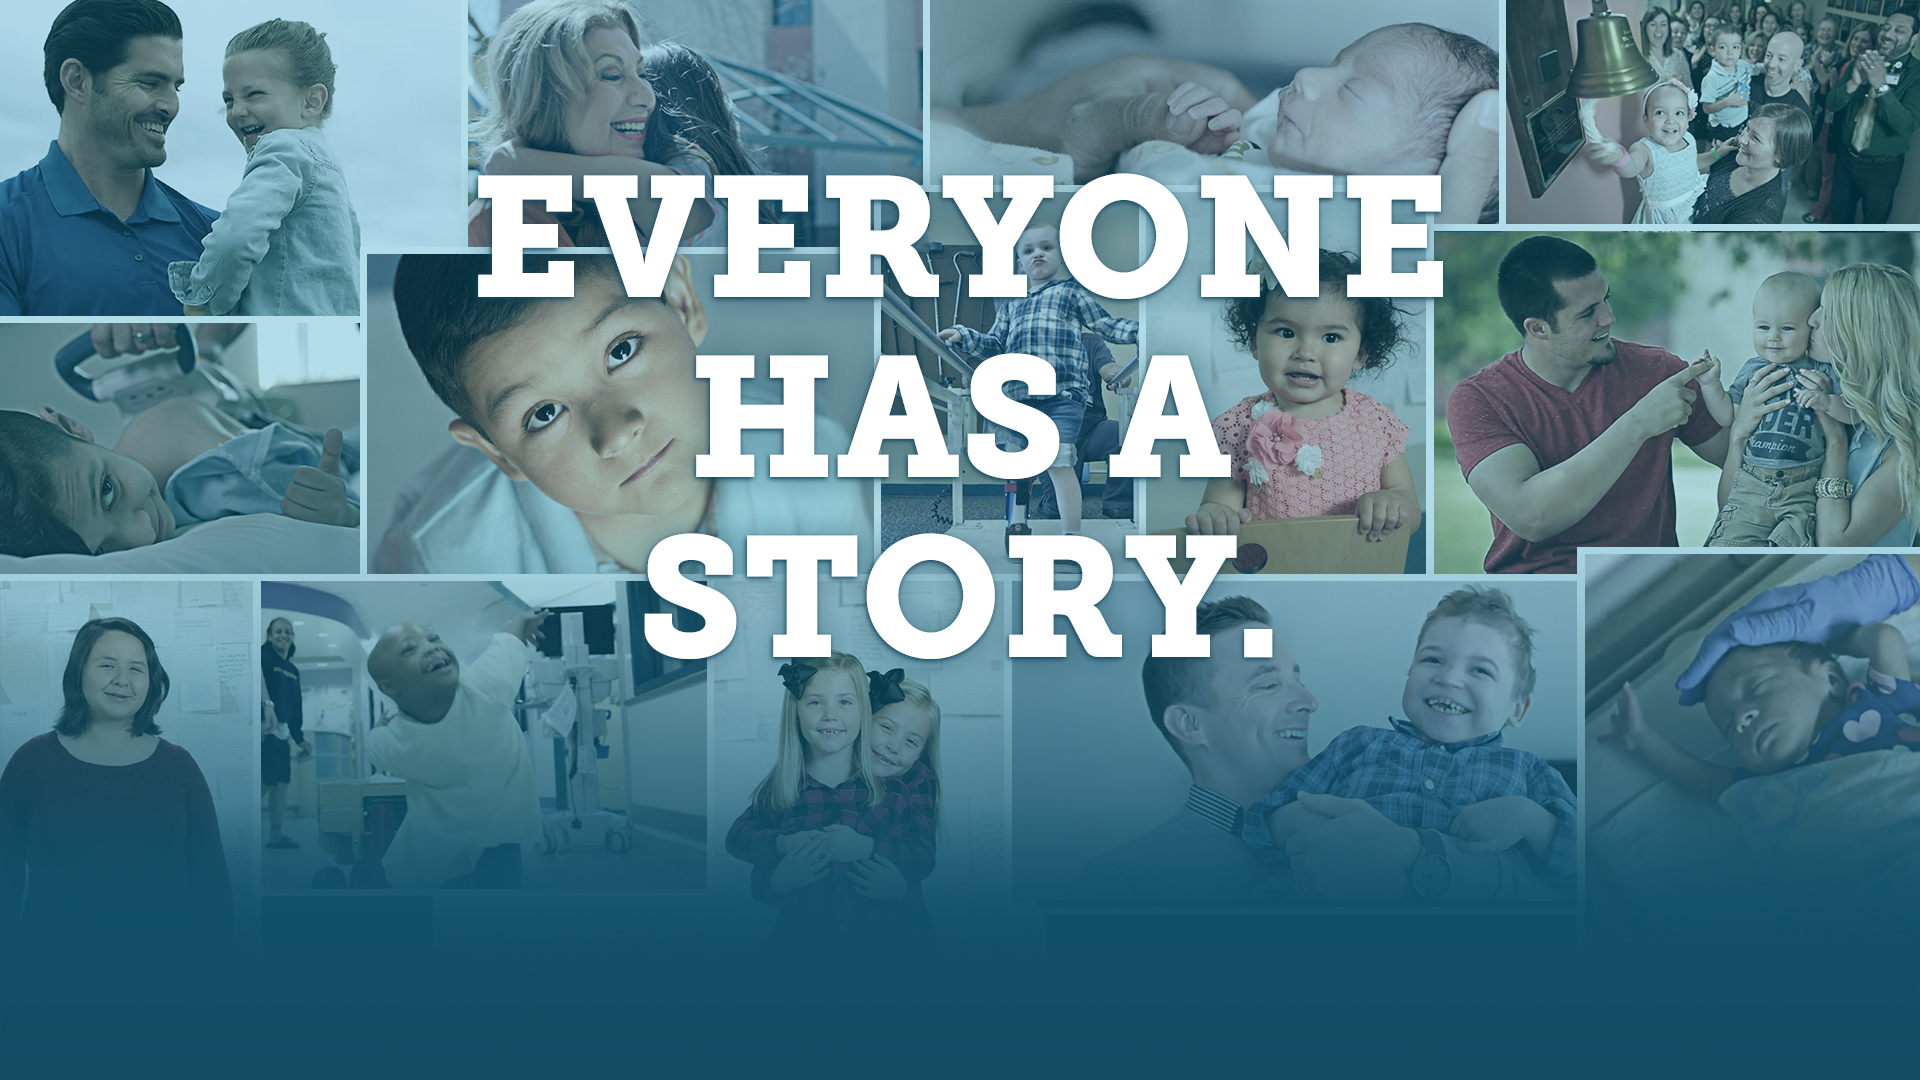 Everyone has a story picture collage